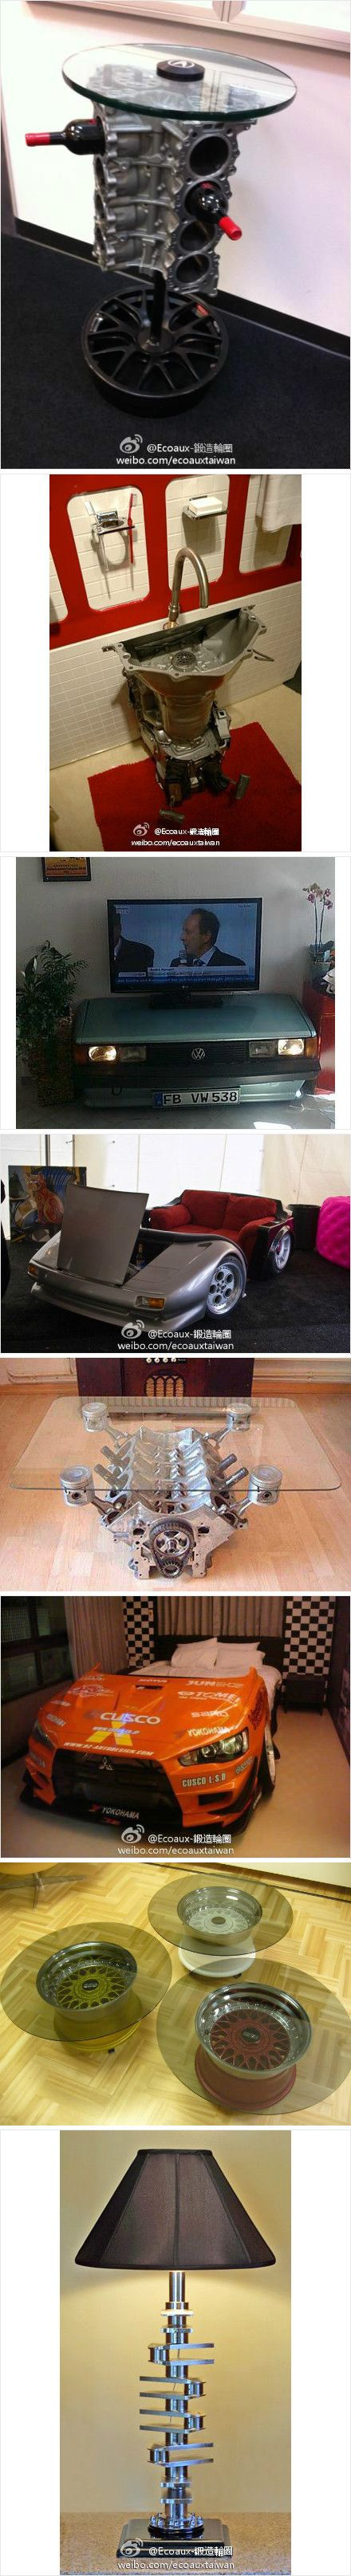 Man Cave Ideas Furniture : Interesting new ways to use old car parts http